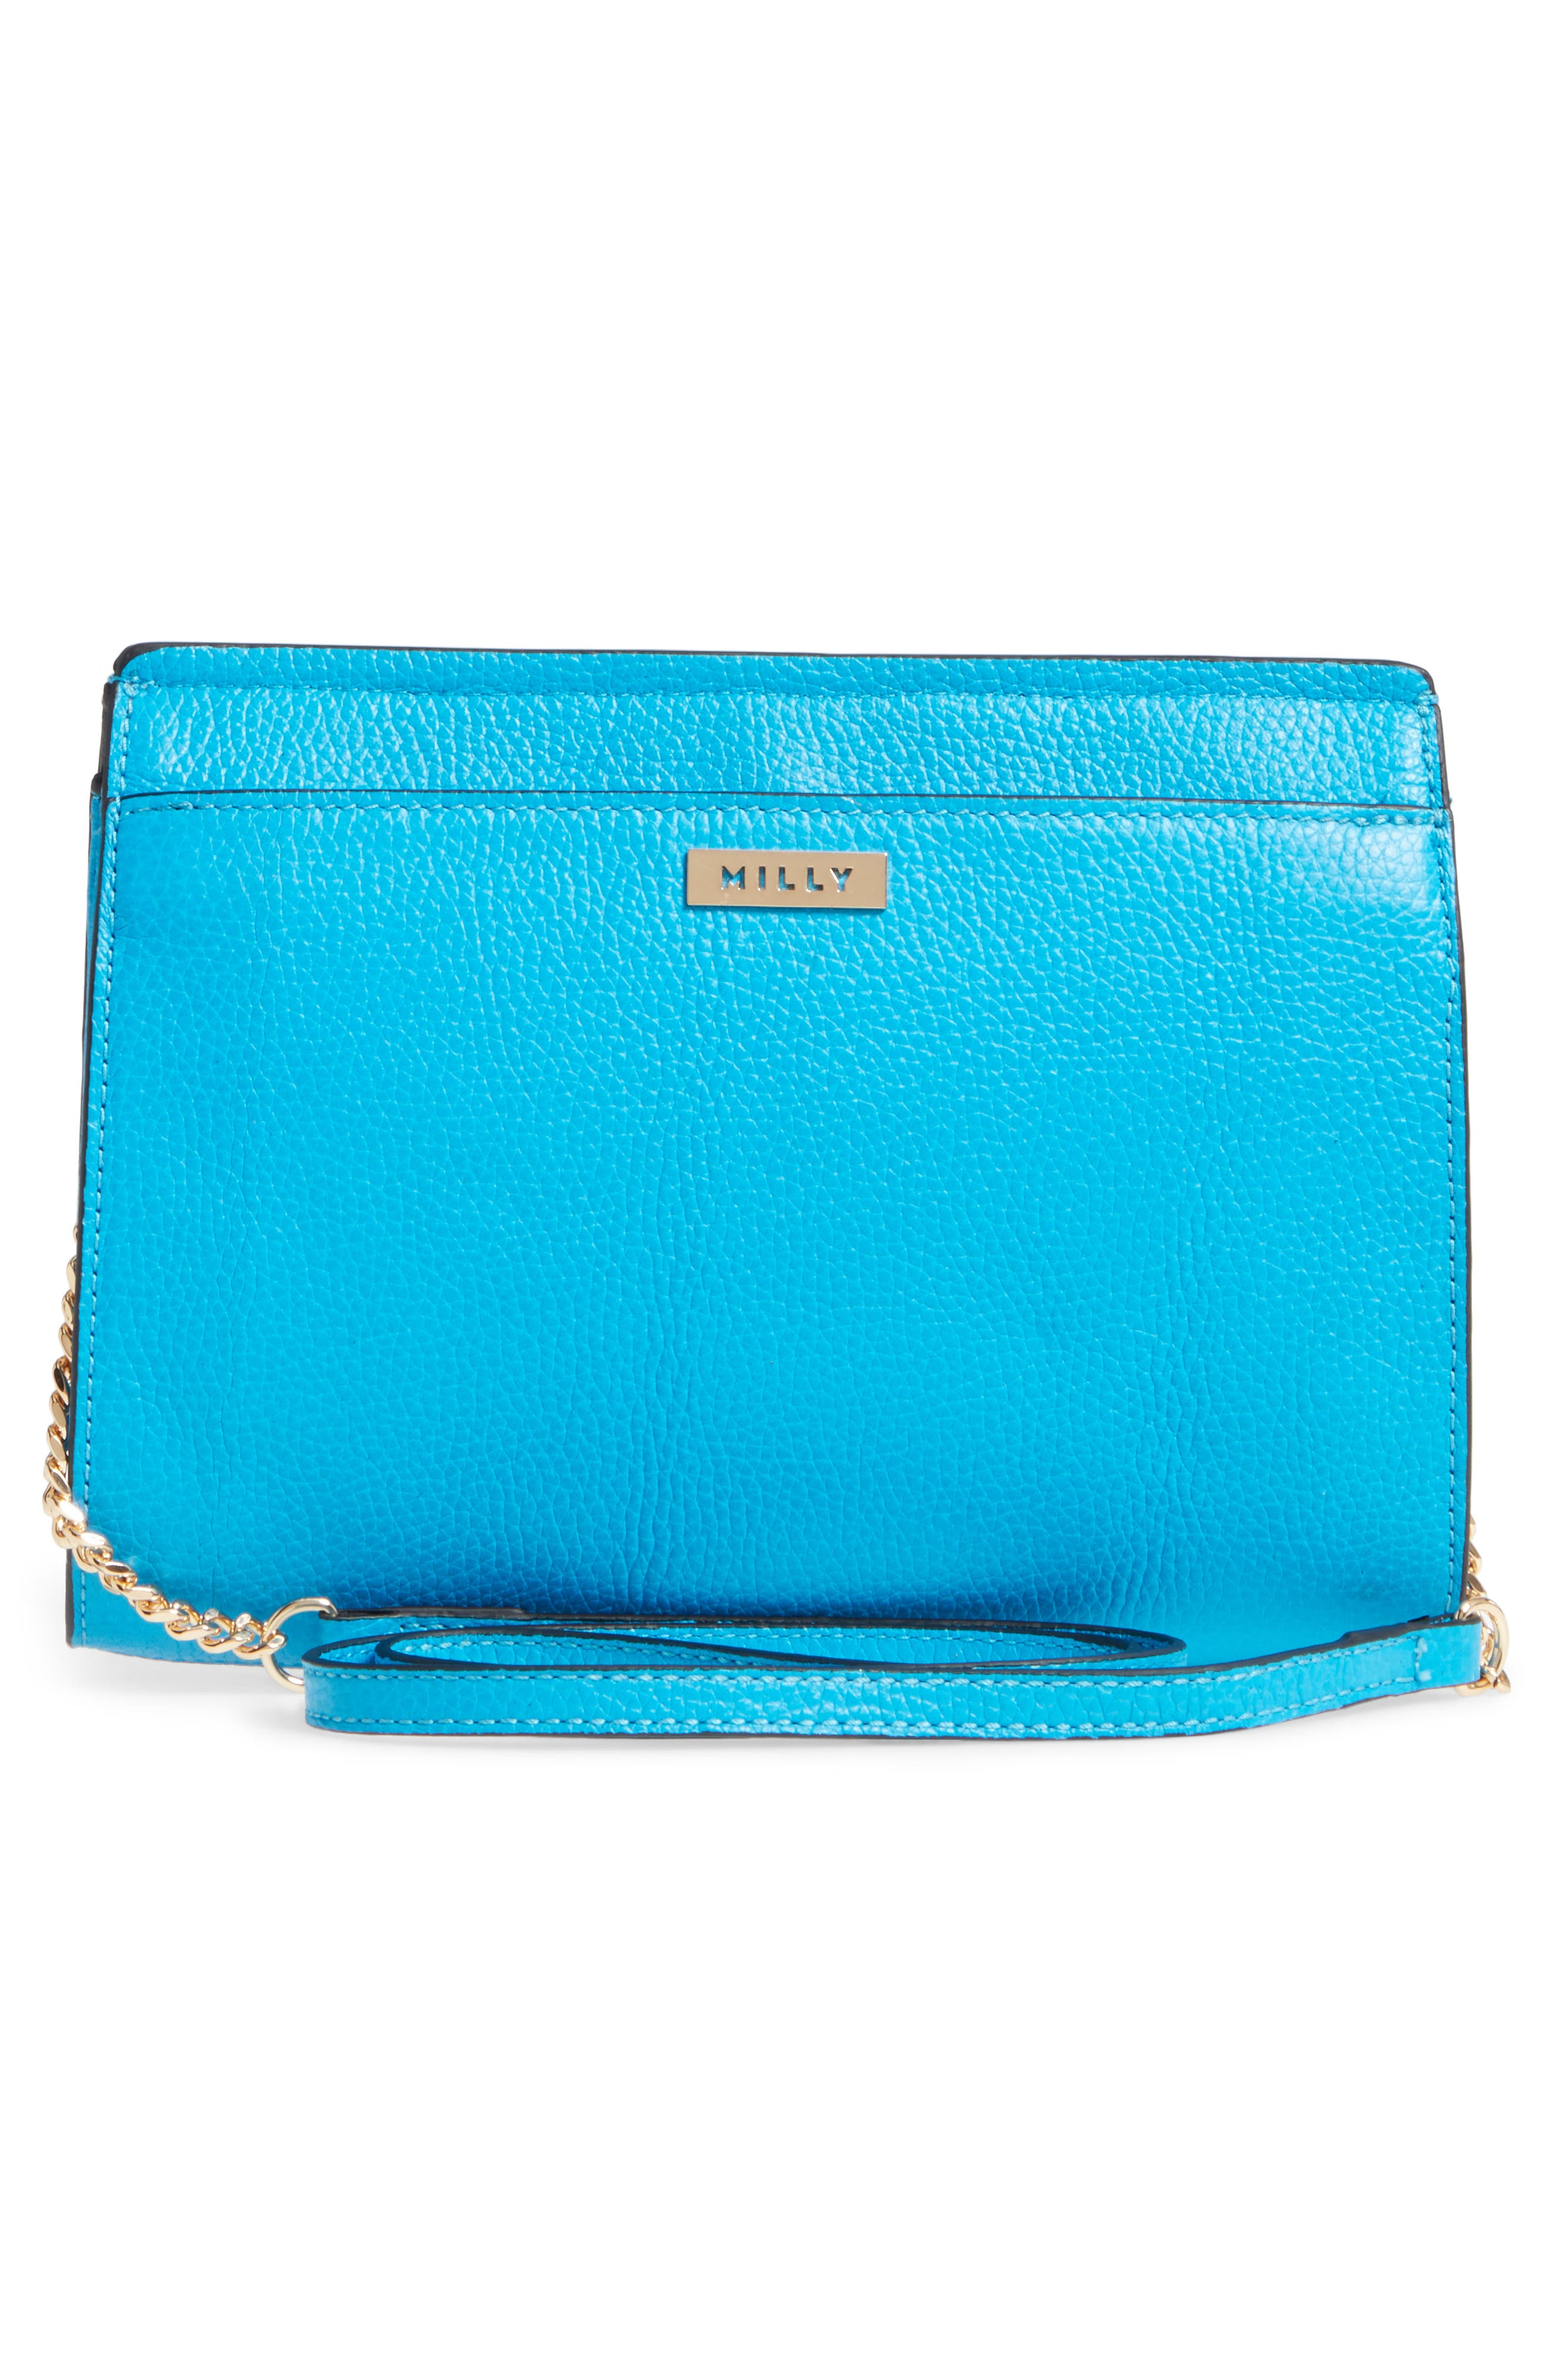 Alternate Image 3  - Milly Astor Pebbled Leather Flap Clutch